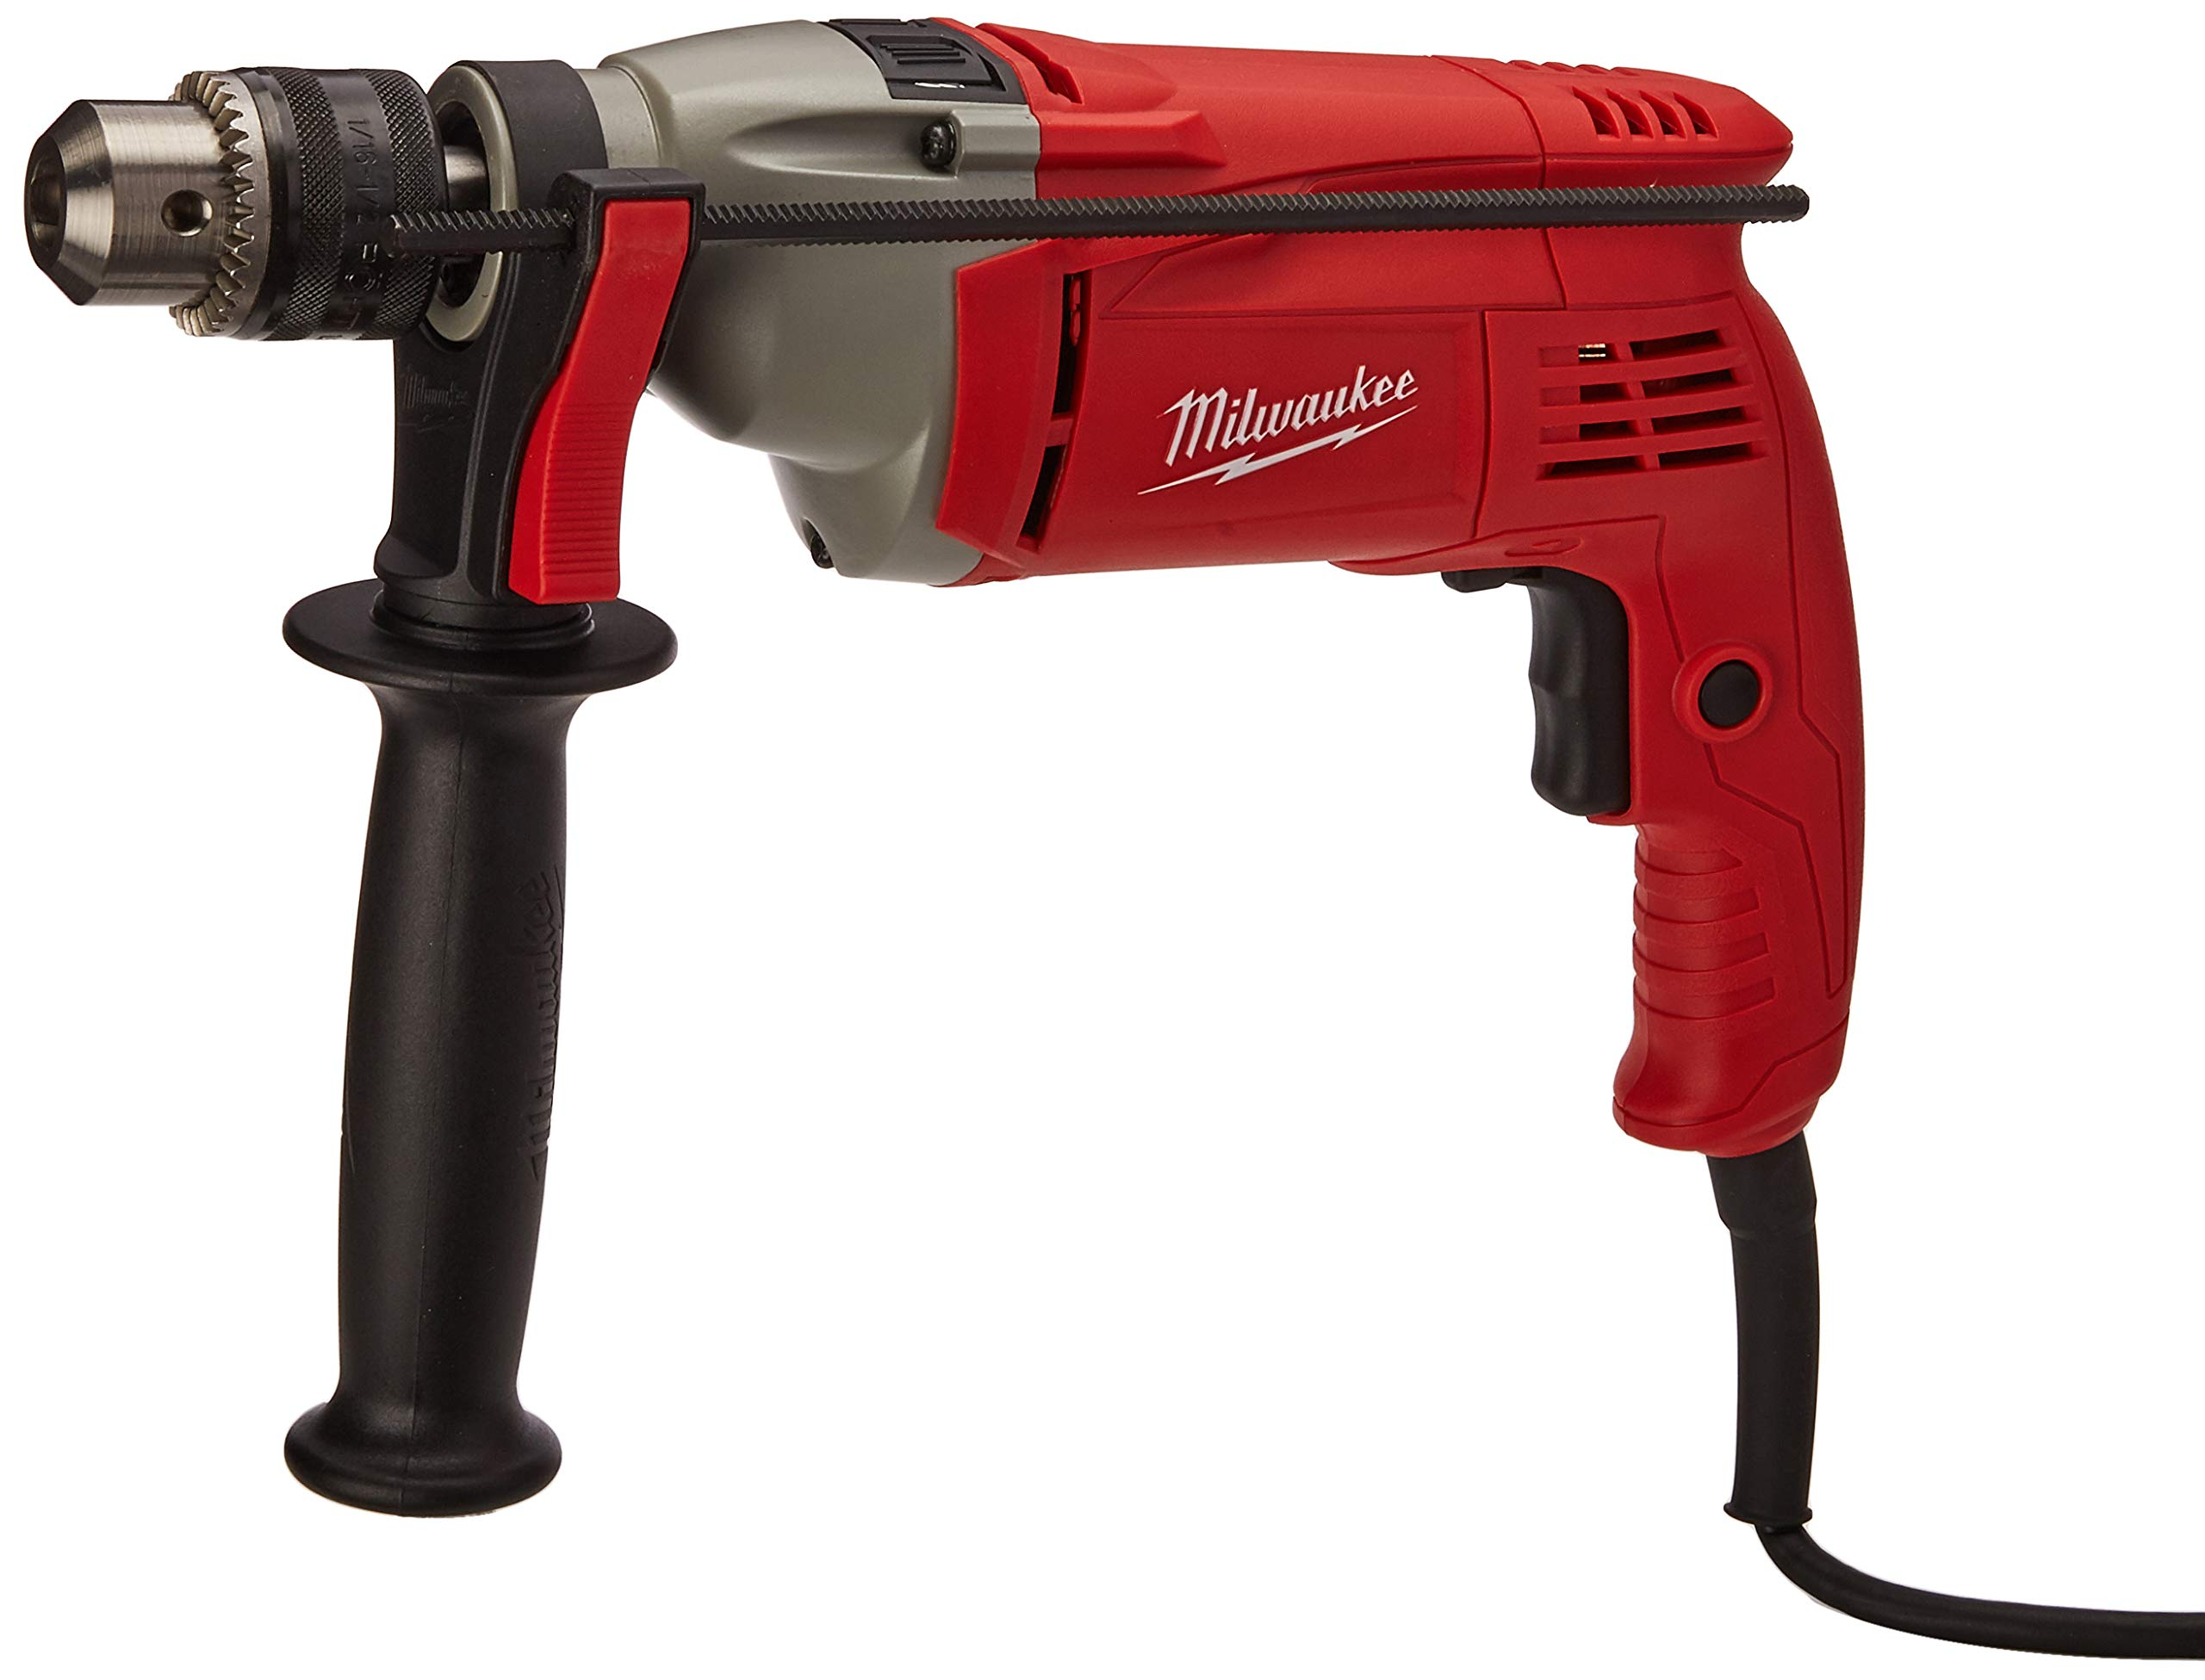 Milwaukee Electric Tool 5376-20 Heavy Duty Corded Hammer Drill, 120 V, 8 A, 1/2'' Keyed Chuck, 0-2800 rpm